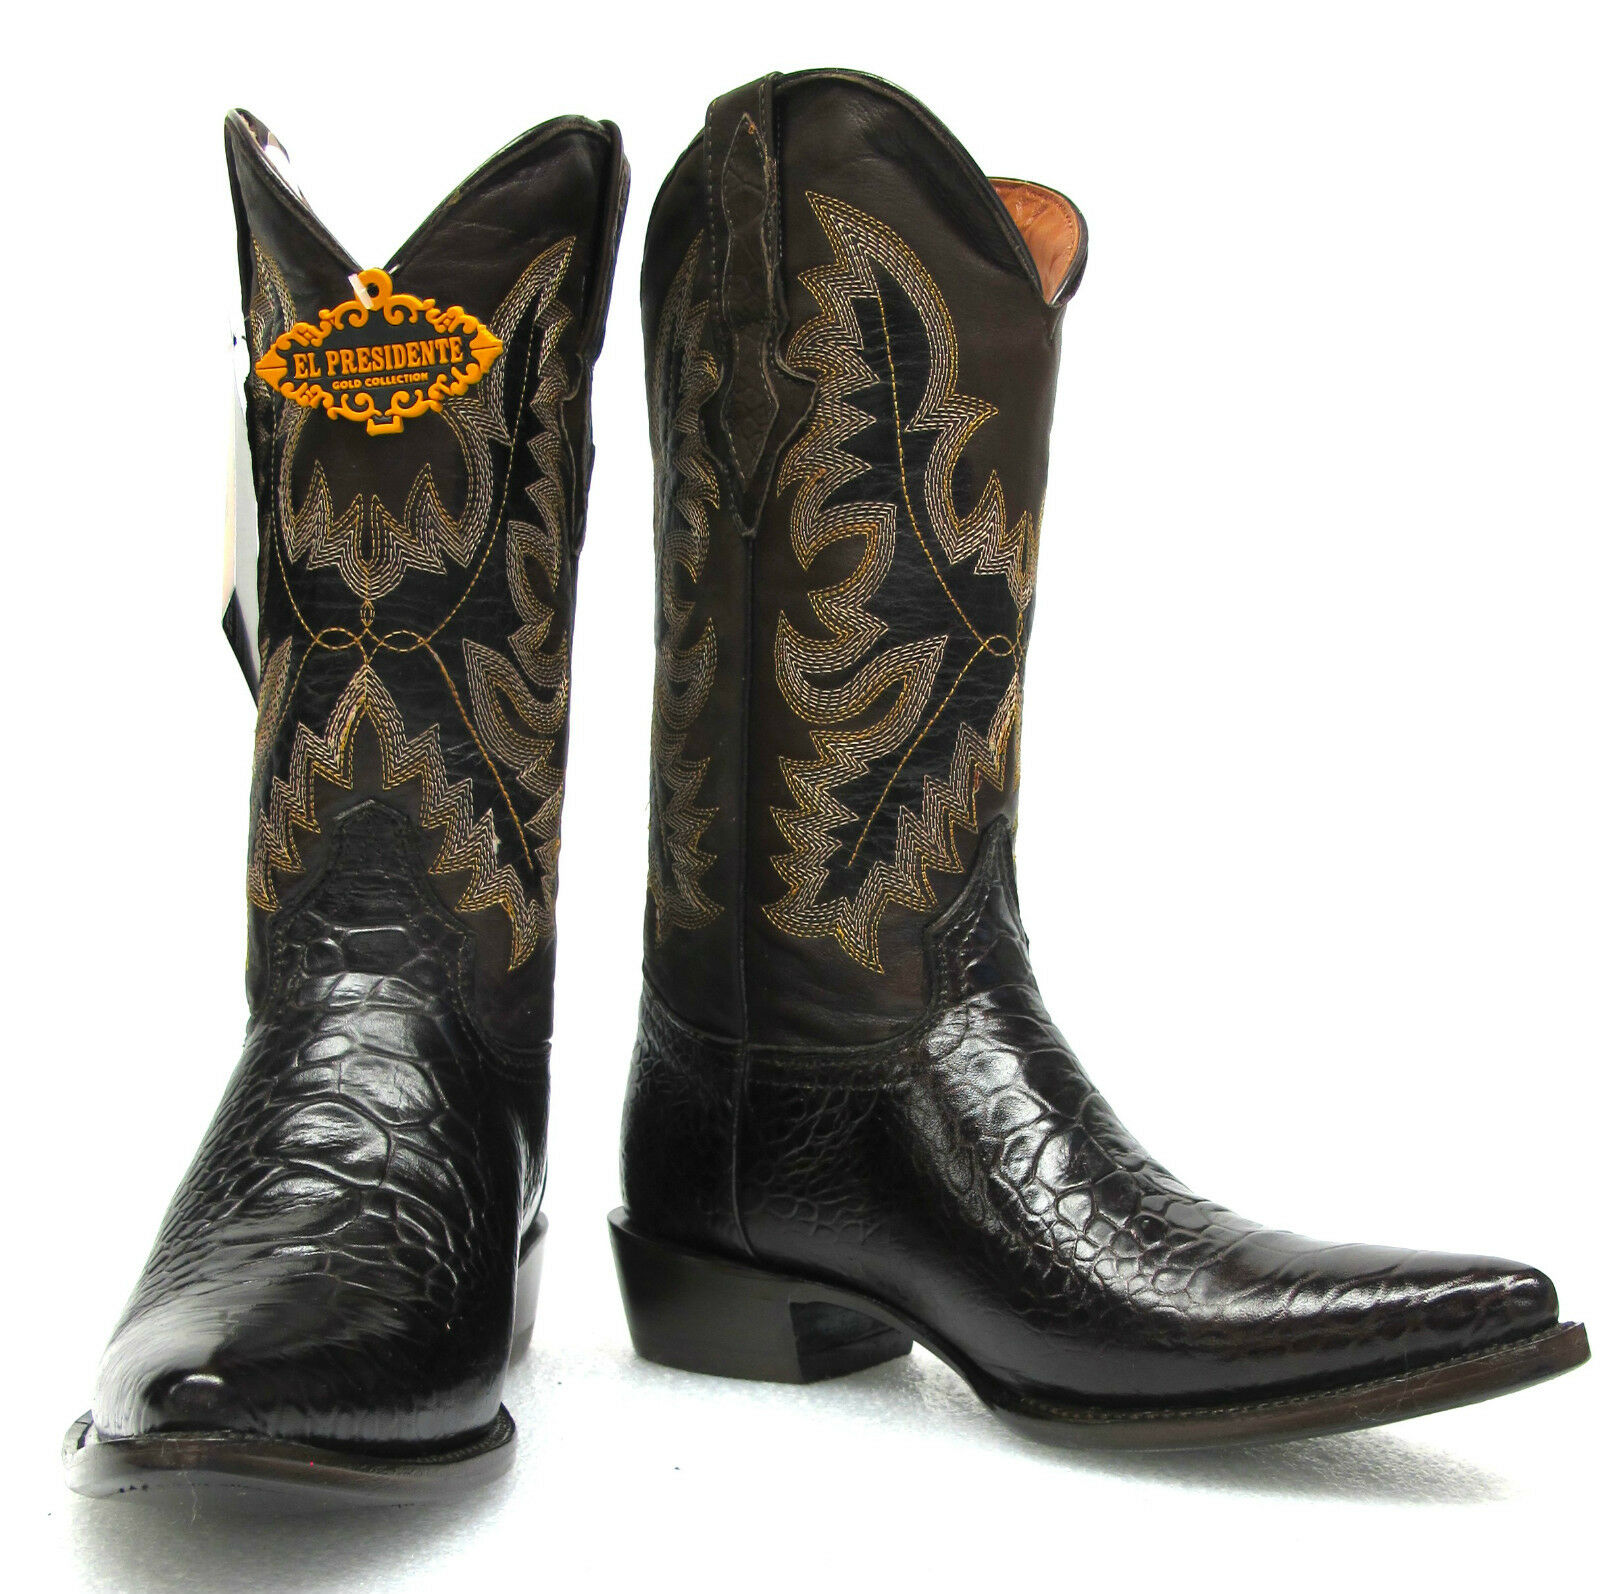 Men's New Turtle Belly Design Leather Cowboy Western Rodeo Boots J-Toe Brown